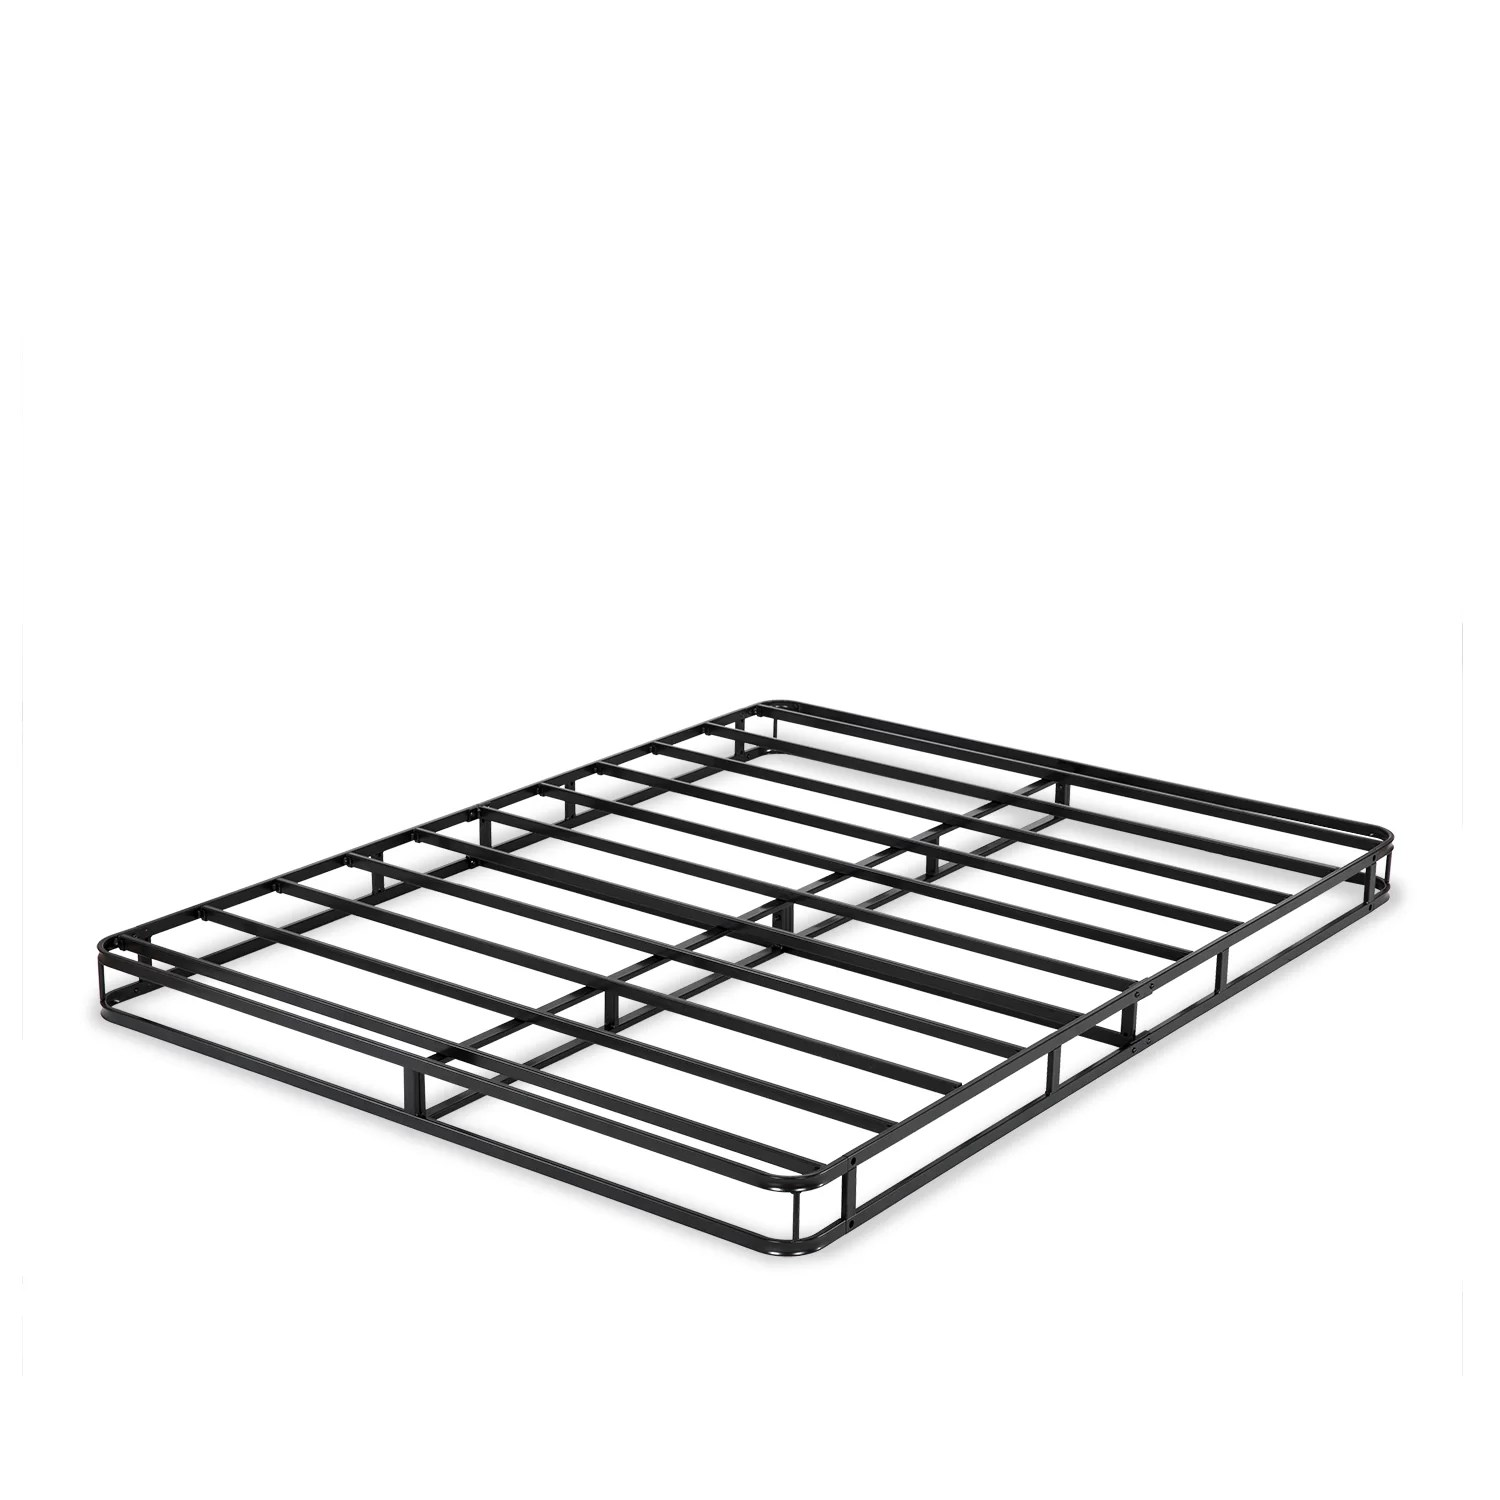 Full Size Low Profile Box Spring